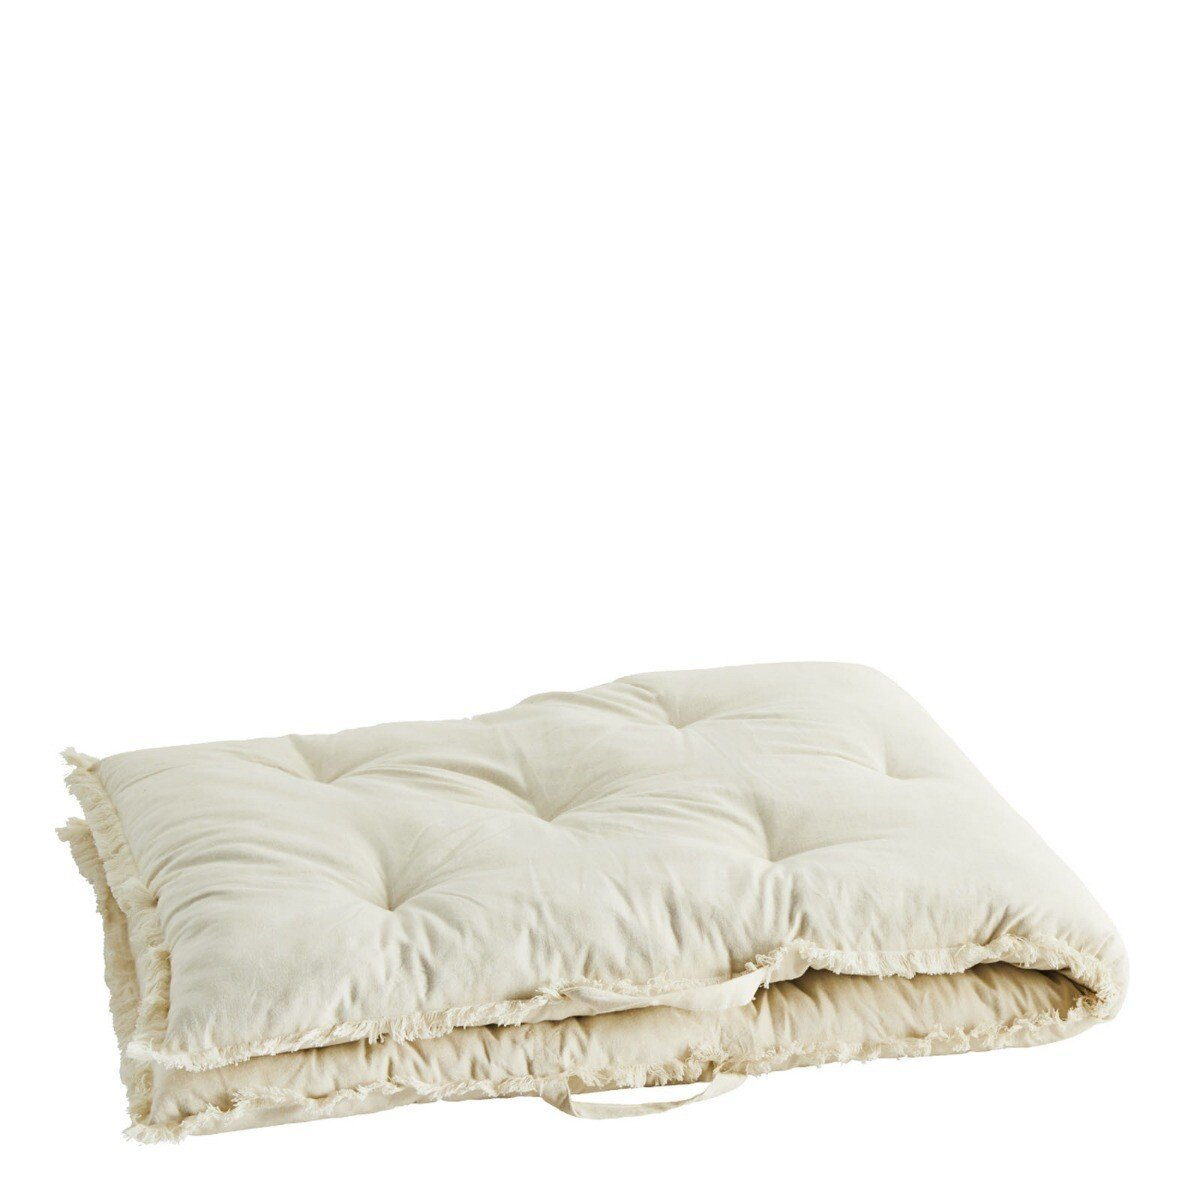 Madam Stoltz kussen matras fringes off white 180 x 70